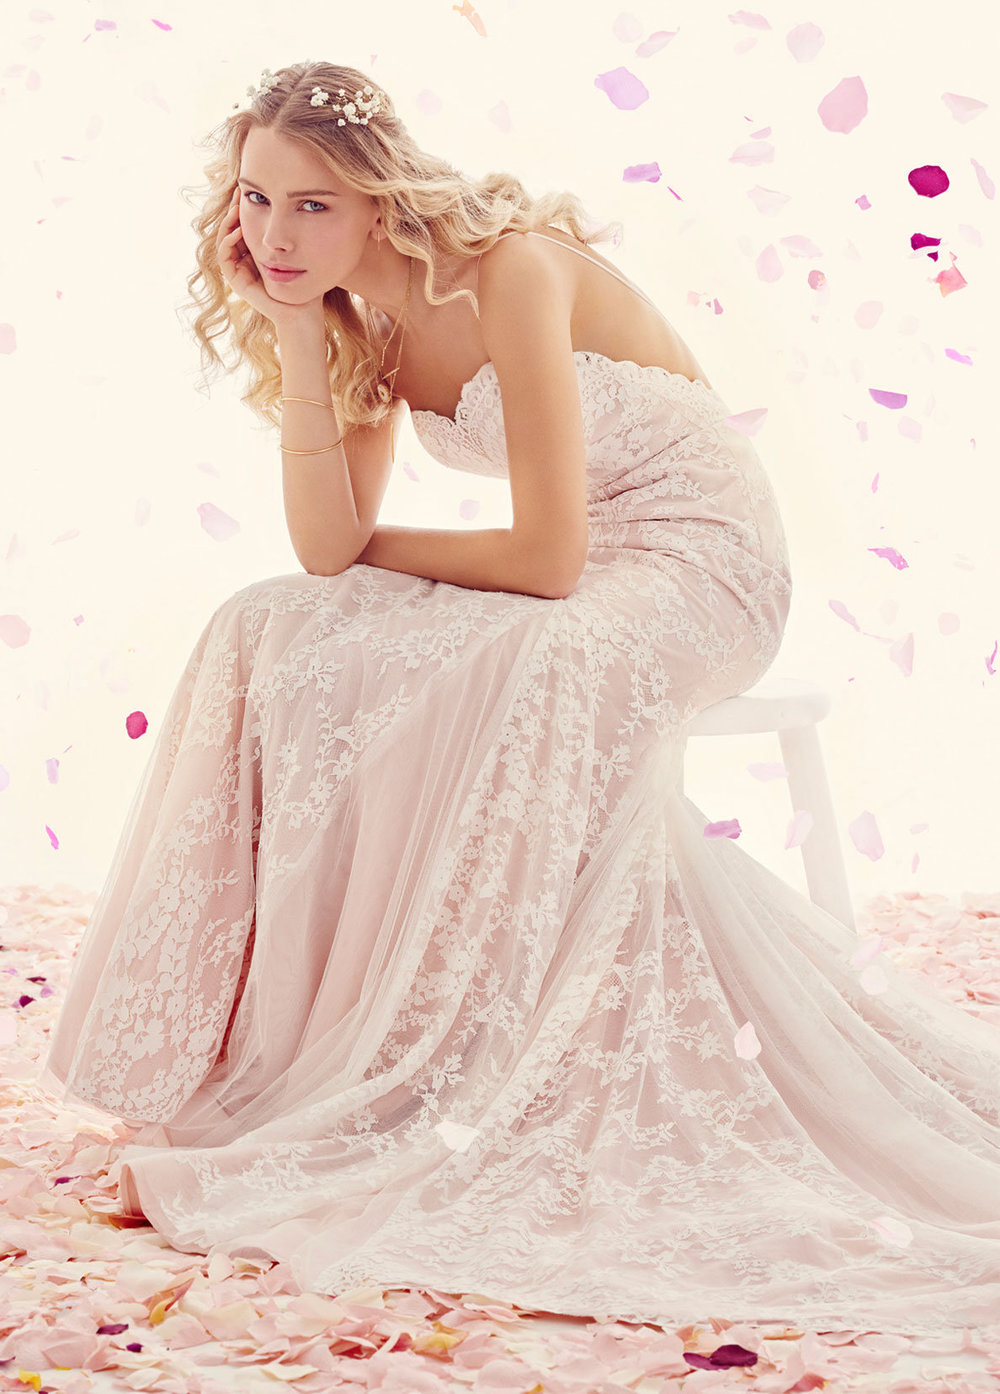 ti-adora-bridal-lace-a-line-gown-scalloped-sweetheart-neckline-straps-english-net-godets-skirt-7510_lg.jpg